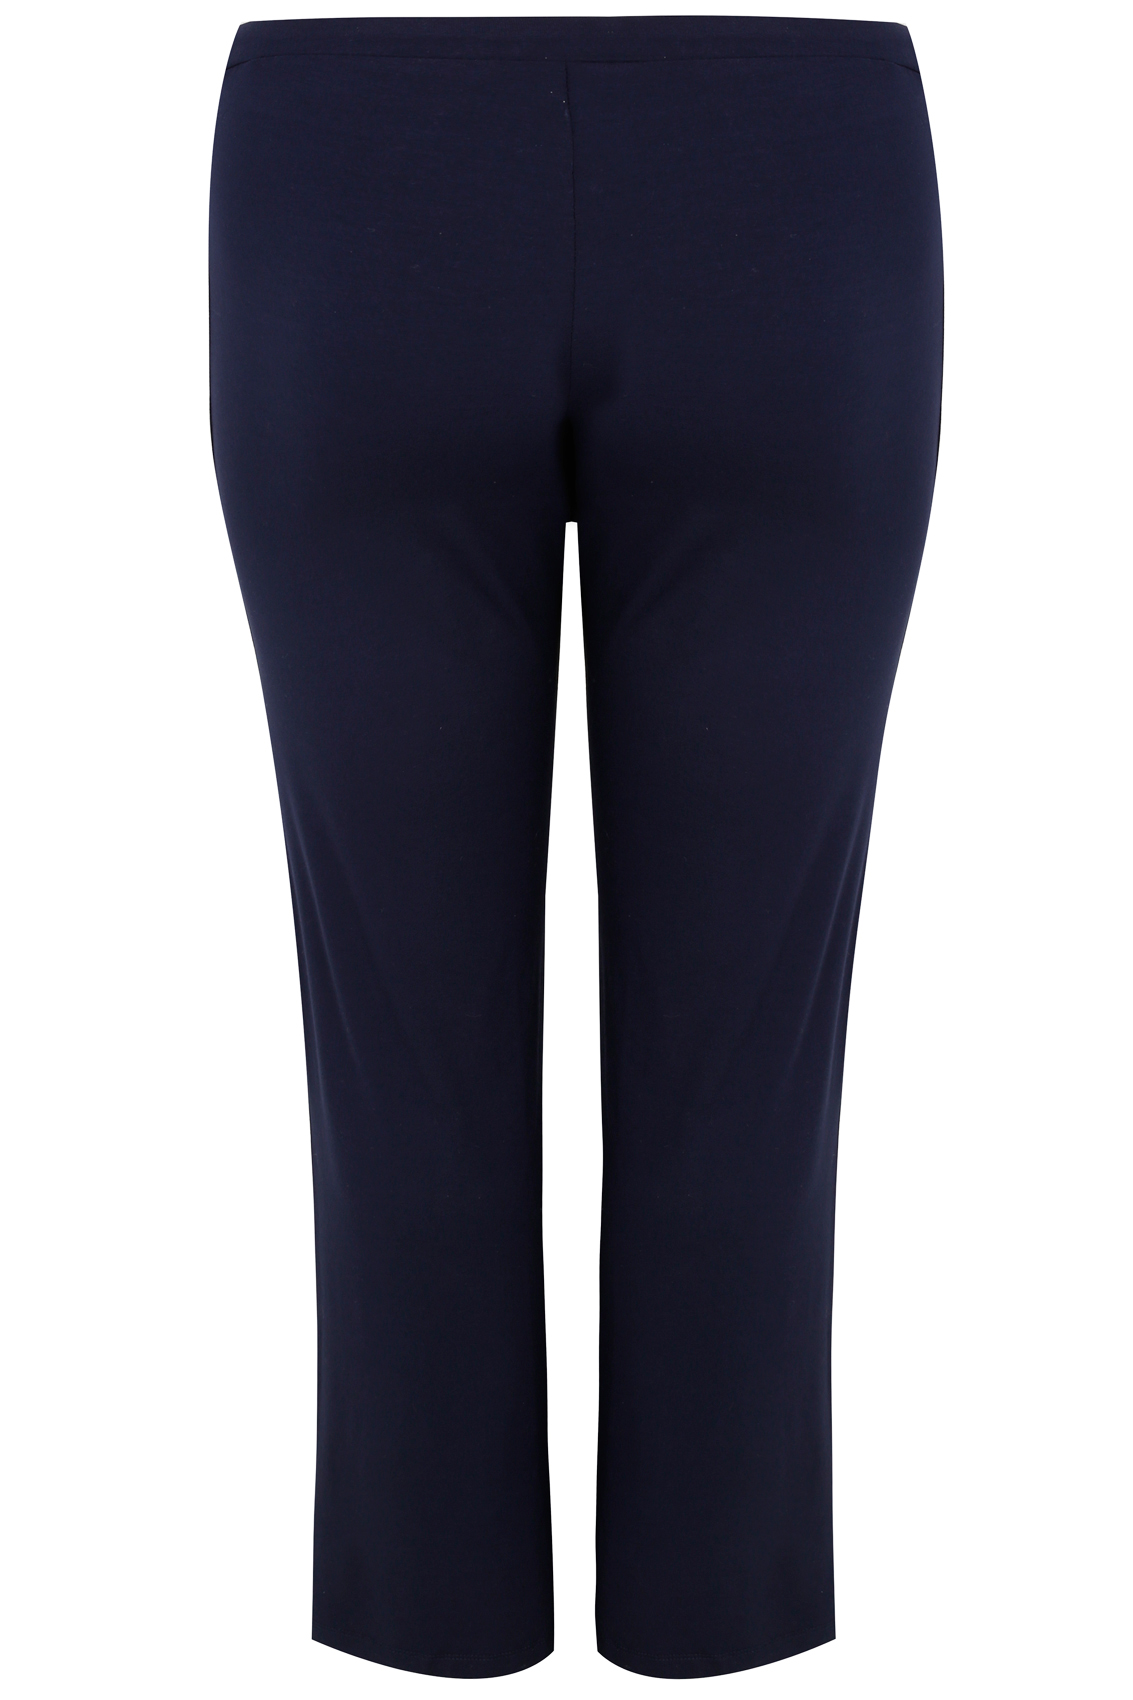 Navy Wide Leg Pull On Stretch Jersey Yoga Trousers Plus -1226